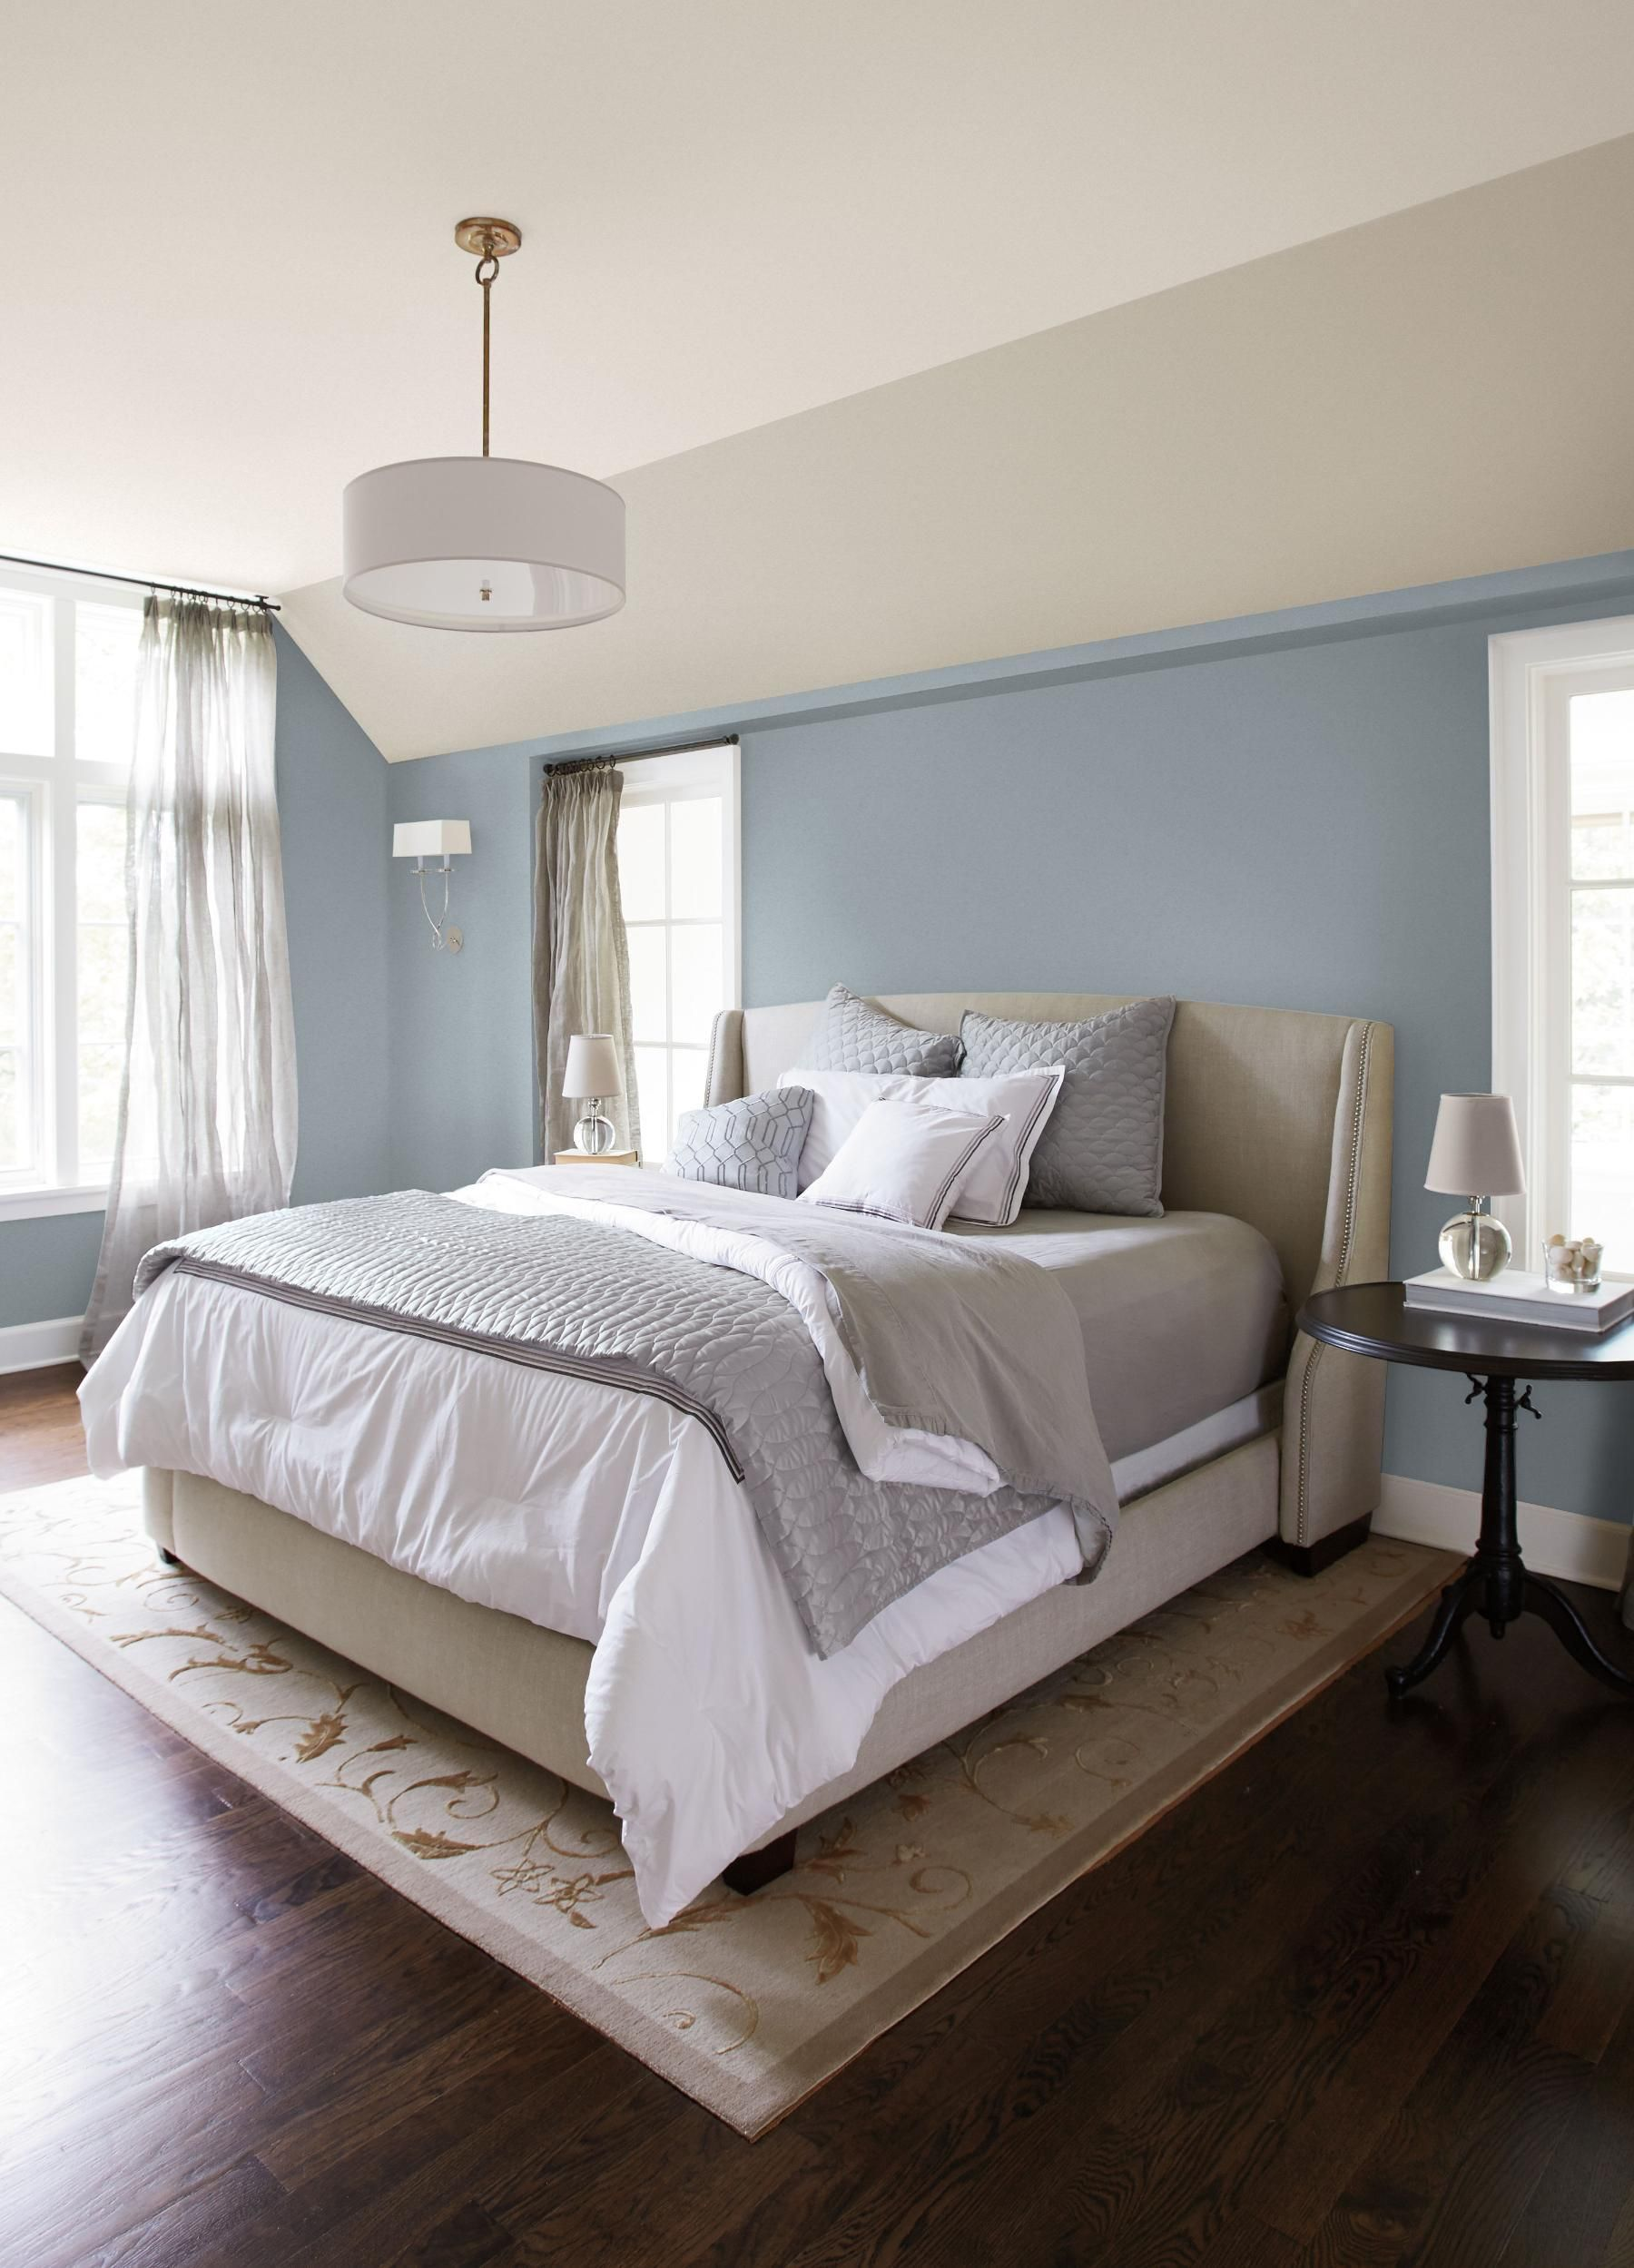 Check Out The Room I Ve Designed With The Dutch Boy Color